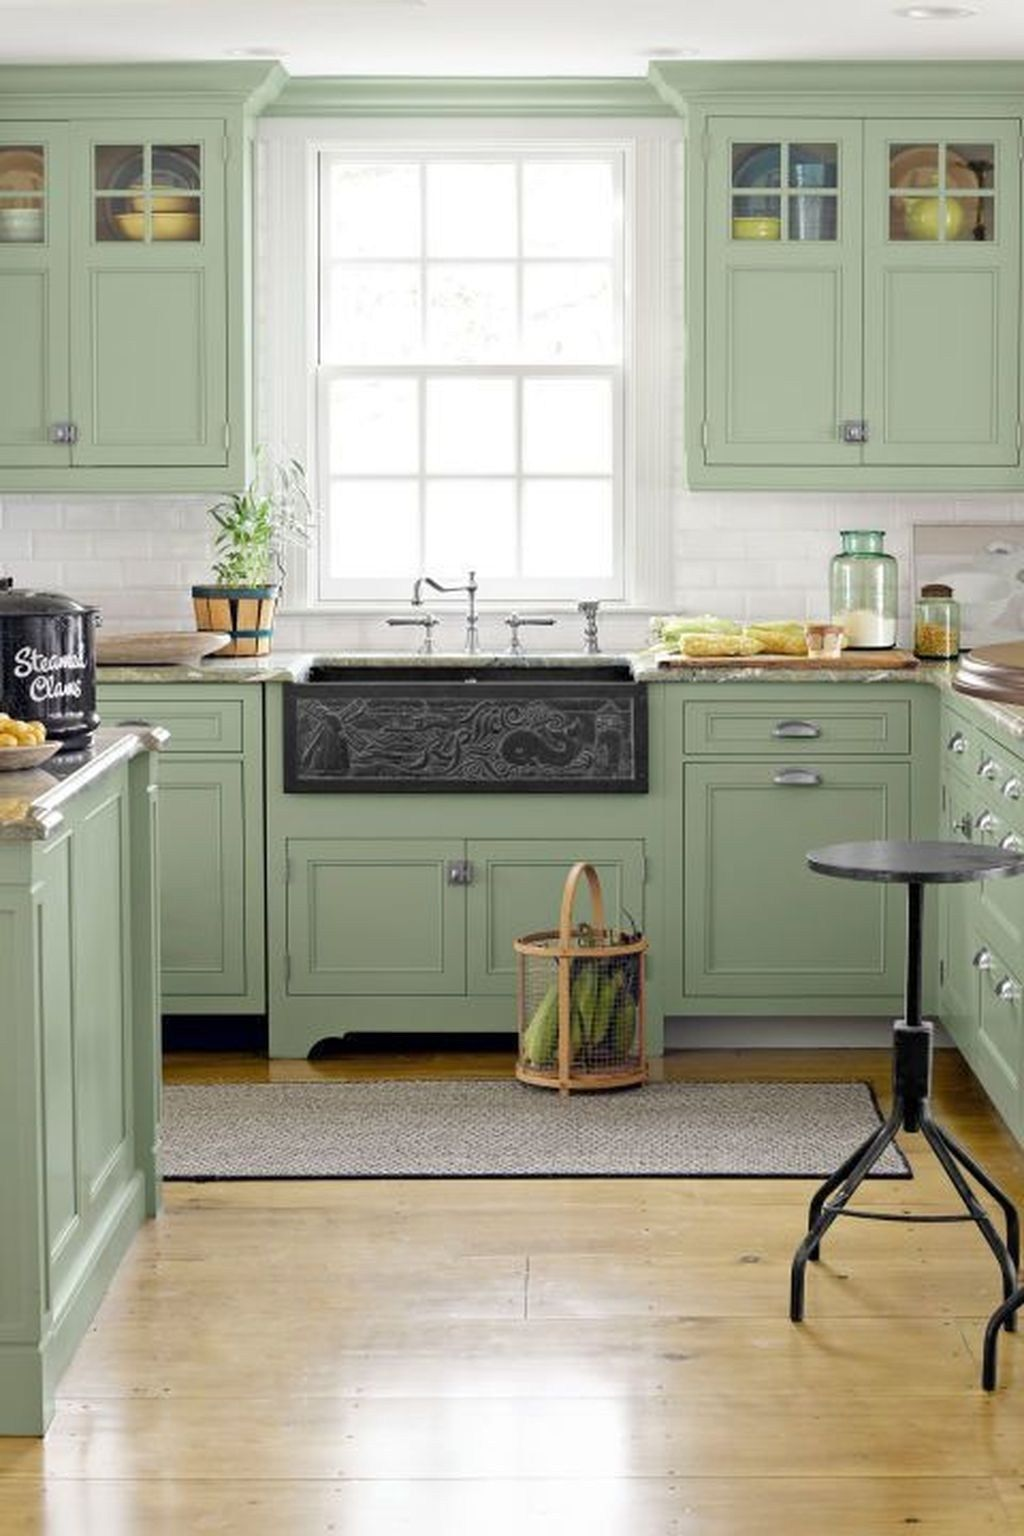 Thinking of a soothing green cabinet paint? This airy kitchen seen on Country Living makes for a relaxing space to cook, gather, and unwind with a glass of wine!